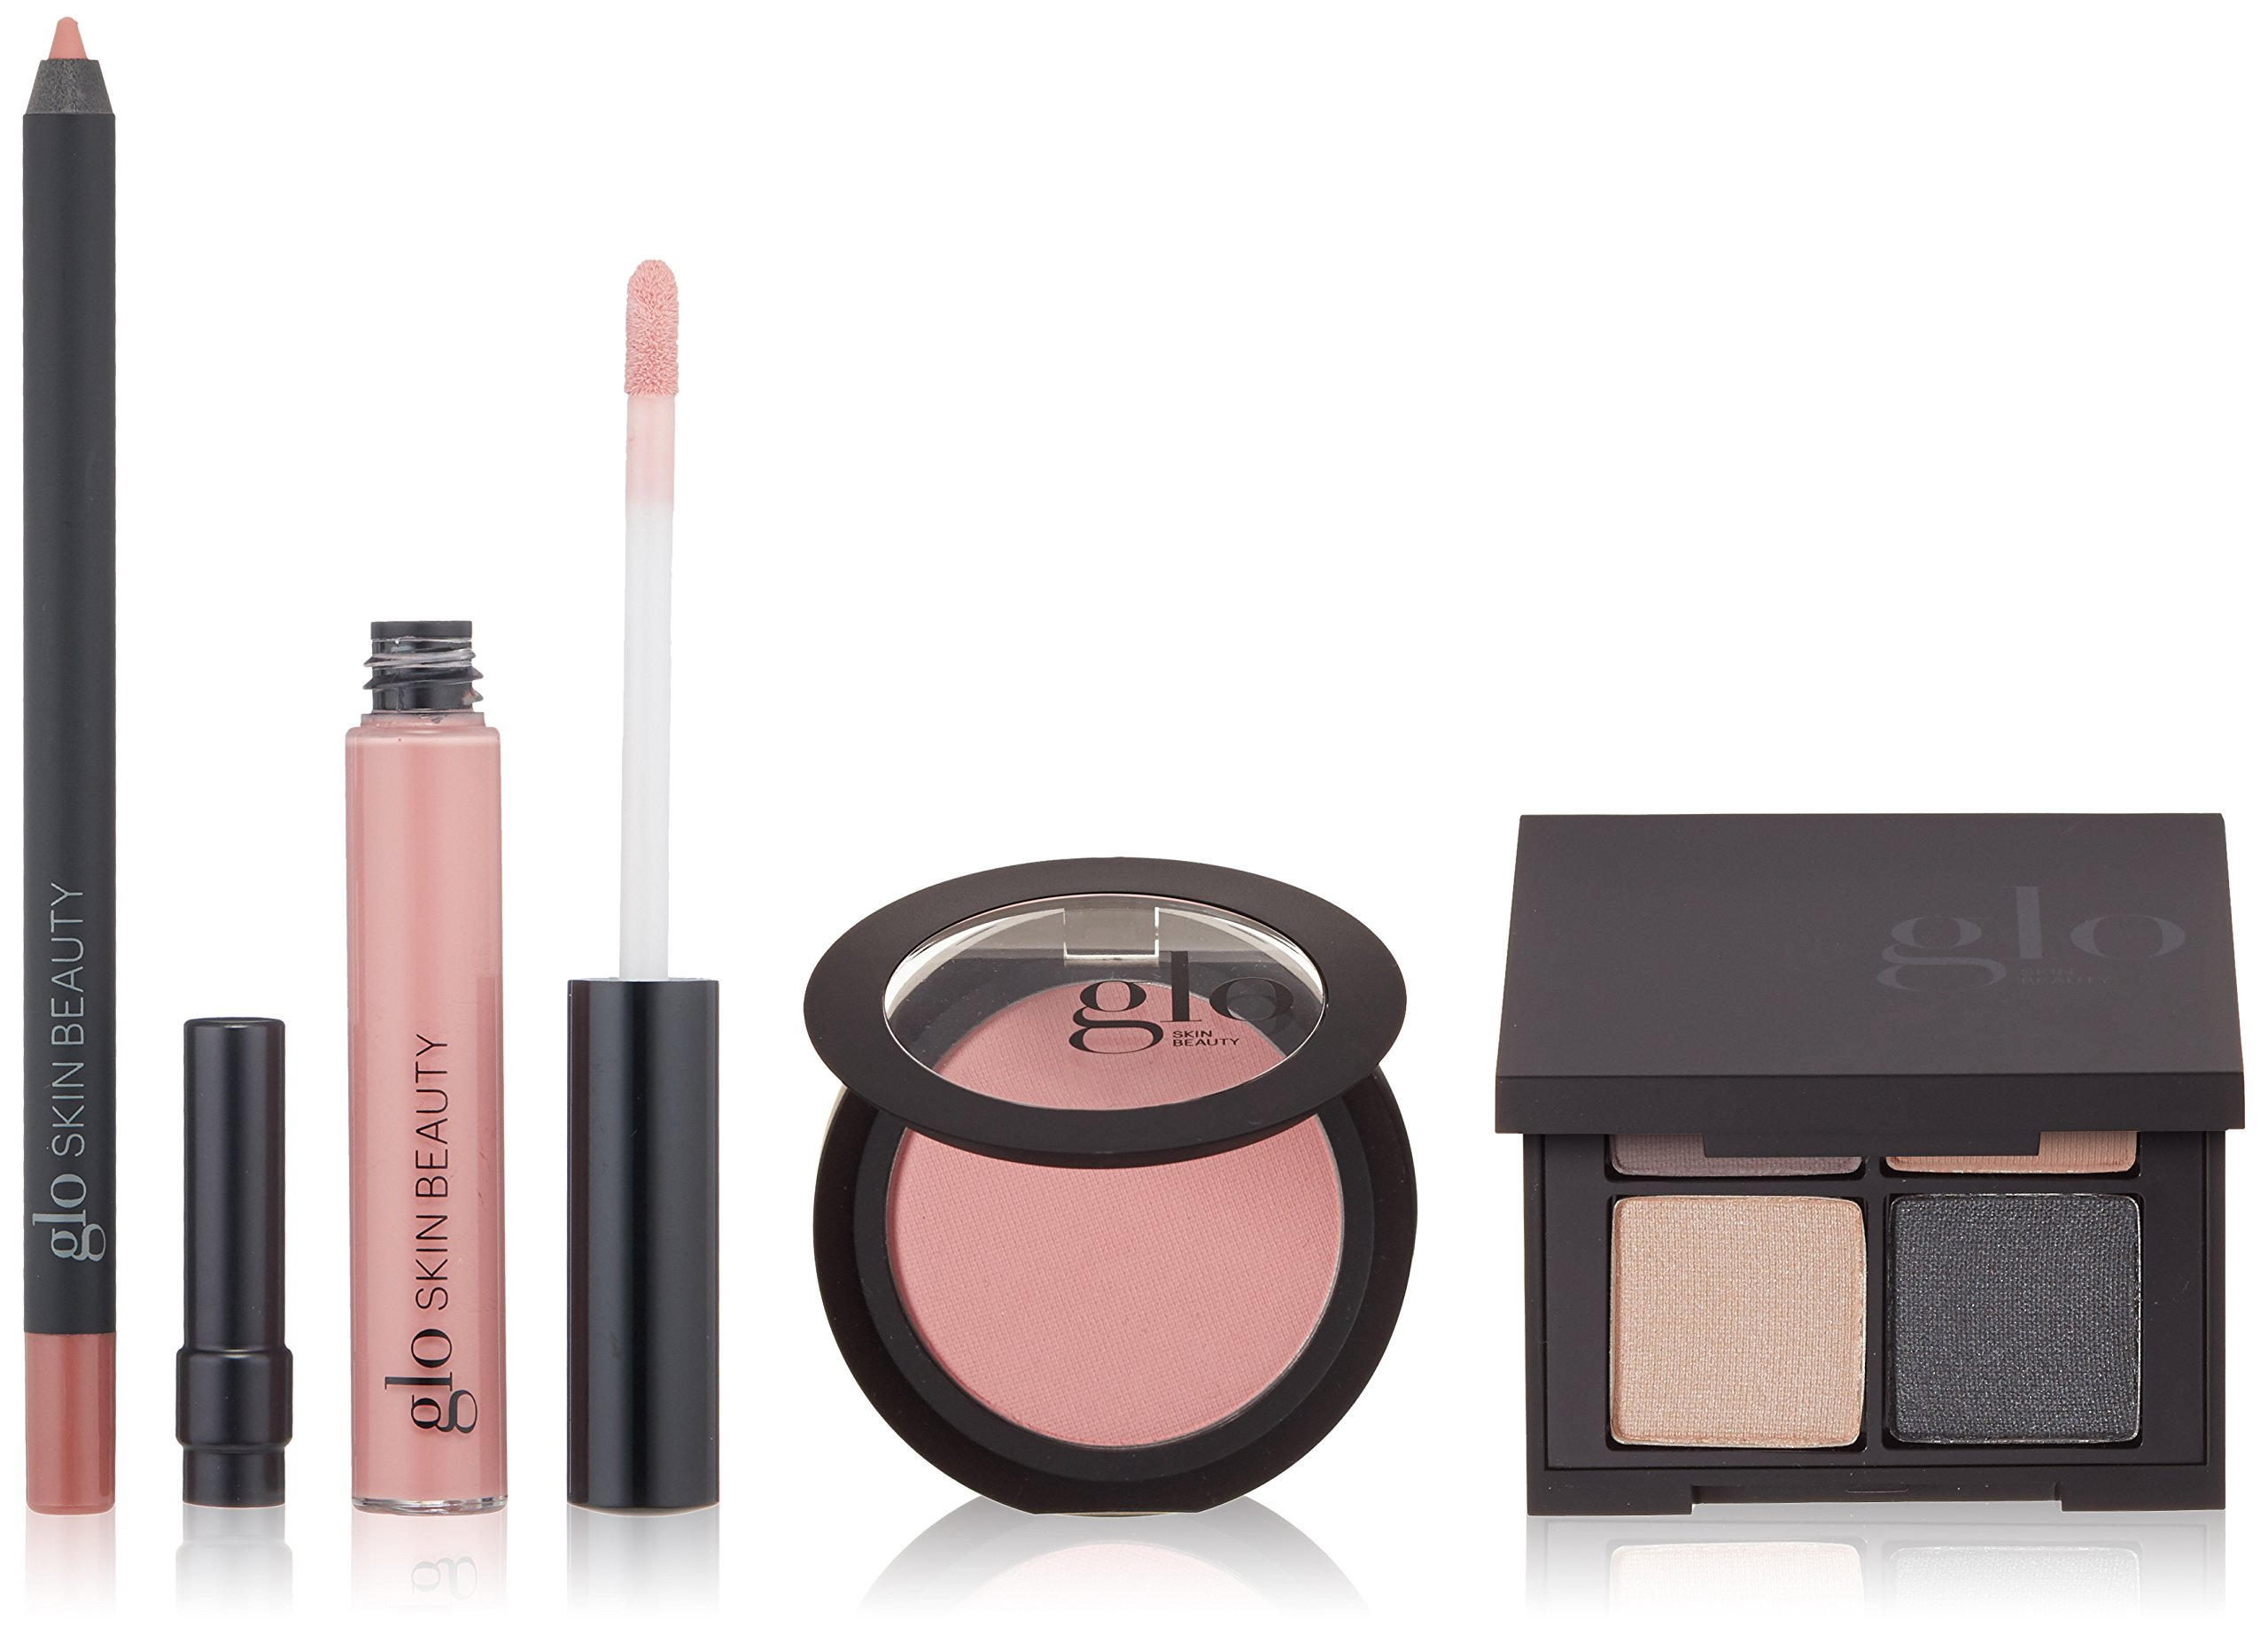 Glo Skin Beauty 4-Piece Day-to-Night Makeup Kit - Soft Pinks | Desk To Datenight in Cityscape Mineral Makeup